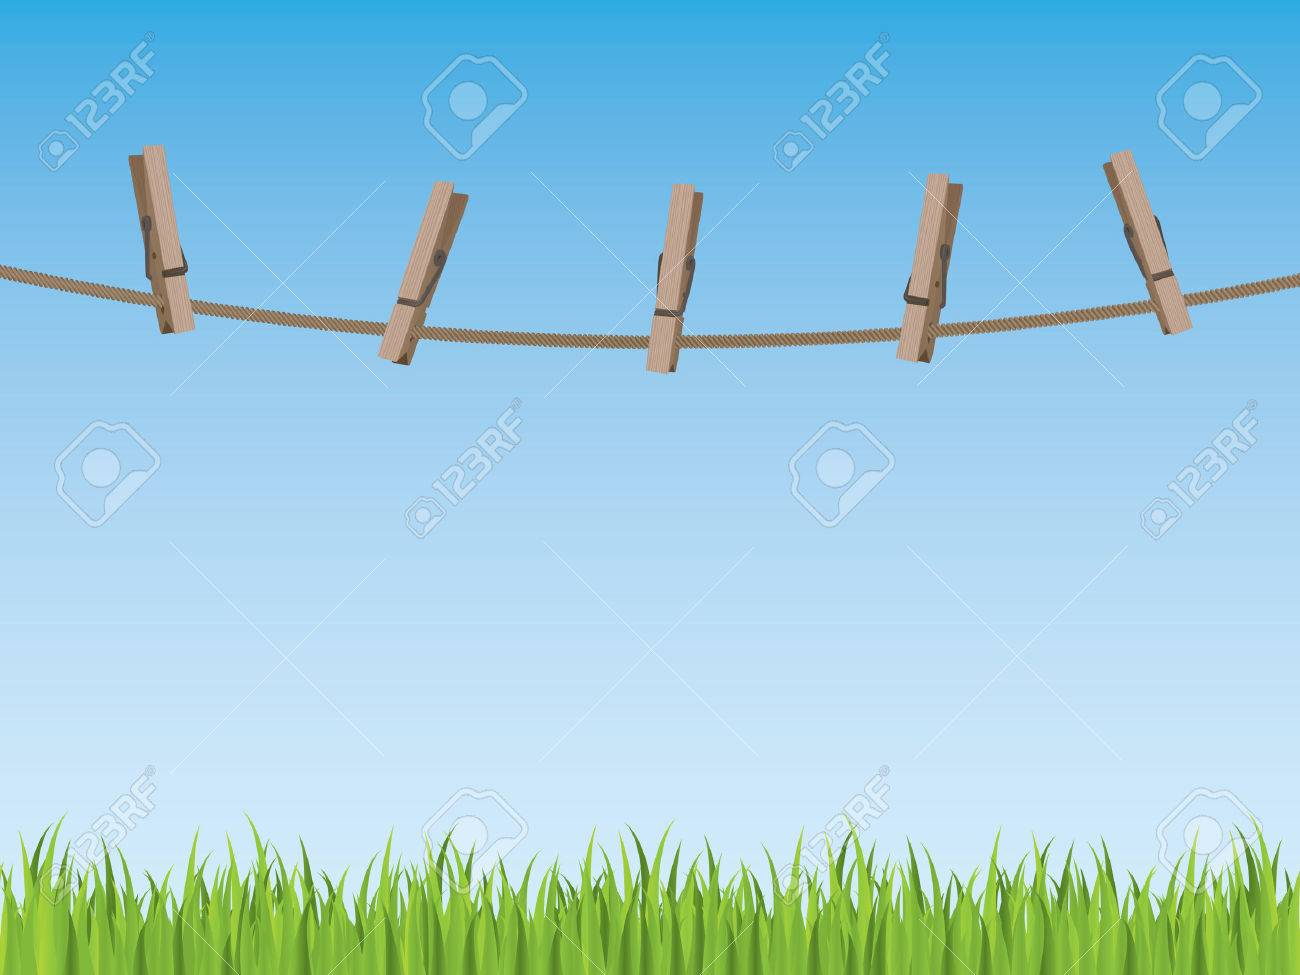 Clothes line background Stock Vector - 6726605